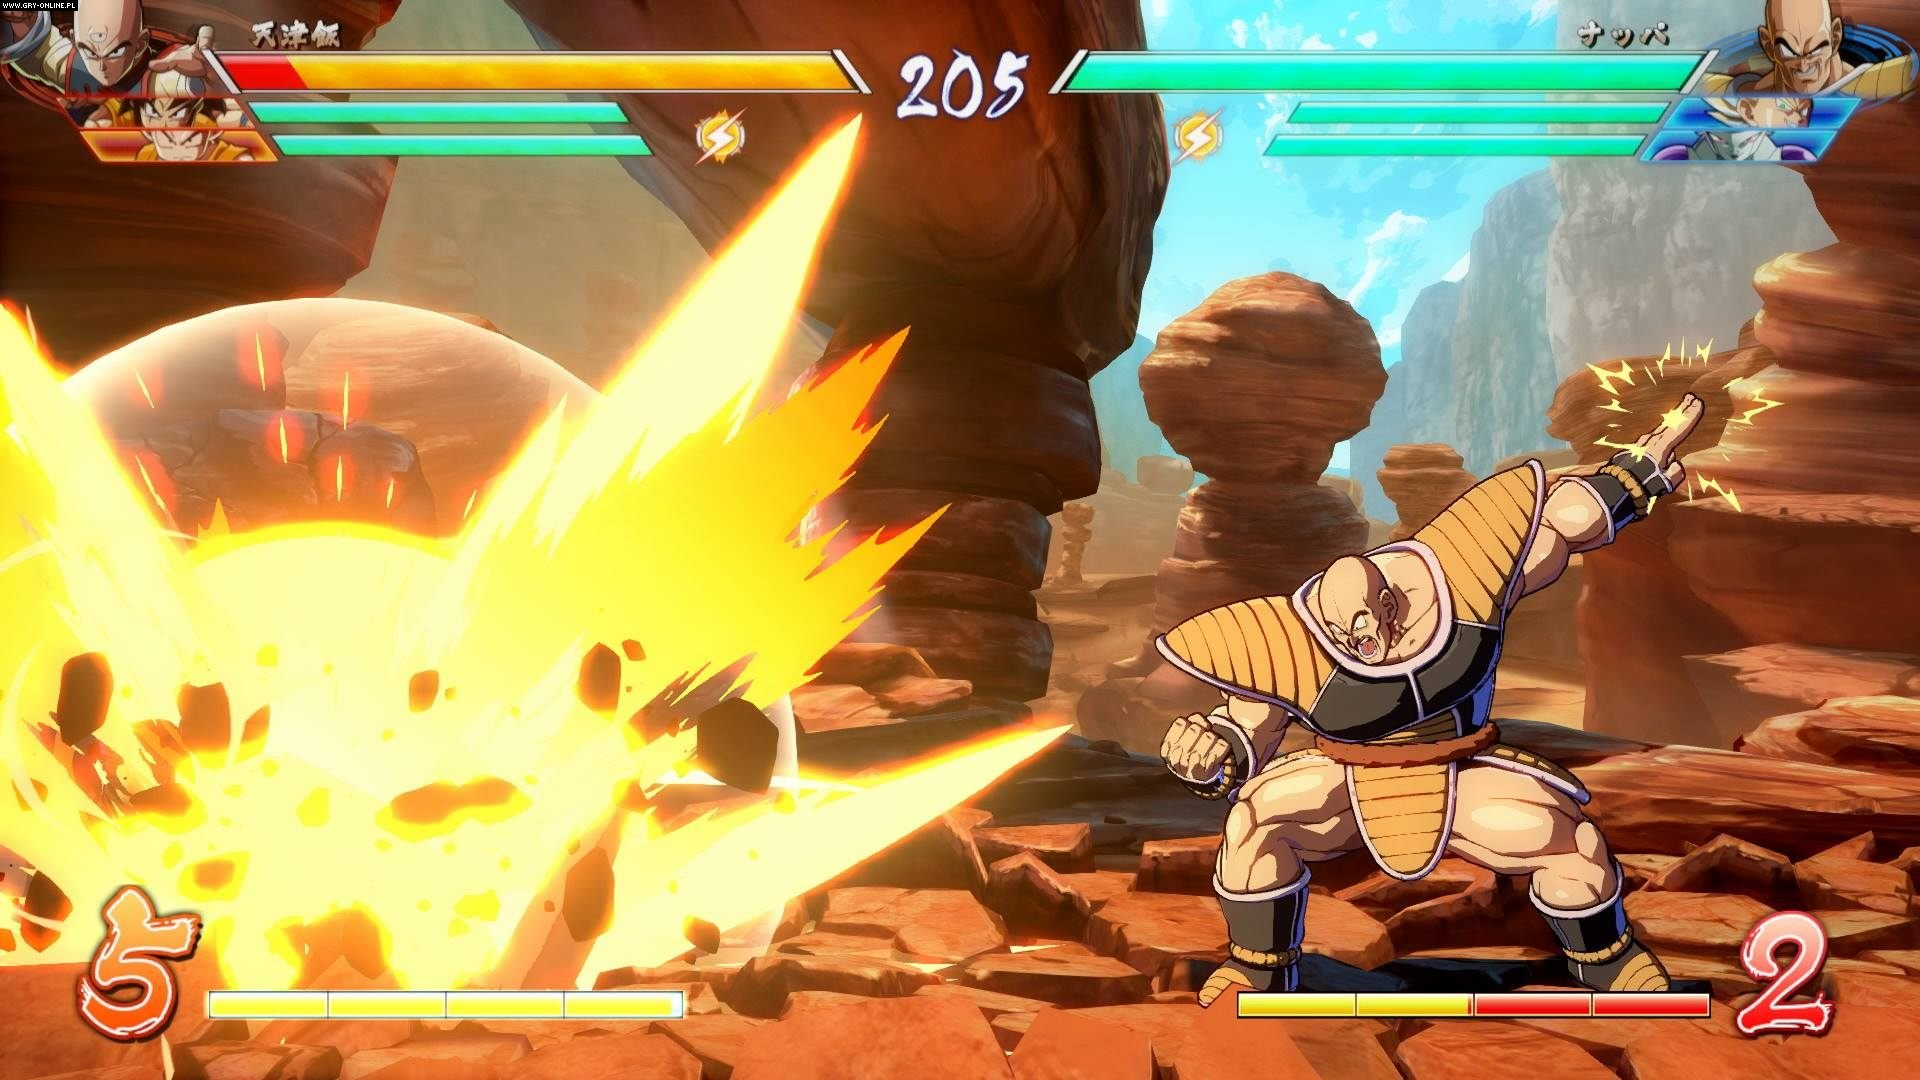 Dragon Ball FighterZ PC, PS4, XONE, Switch Gry Screen 168/230, Arc System Works, Bandai Namco Entertainment